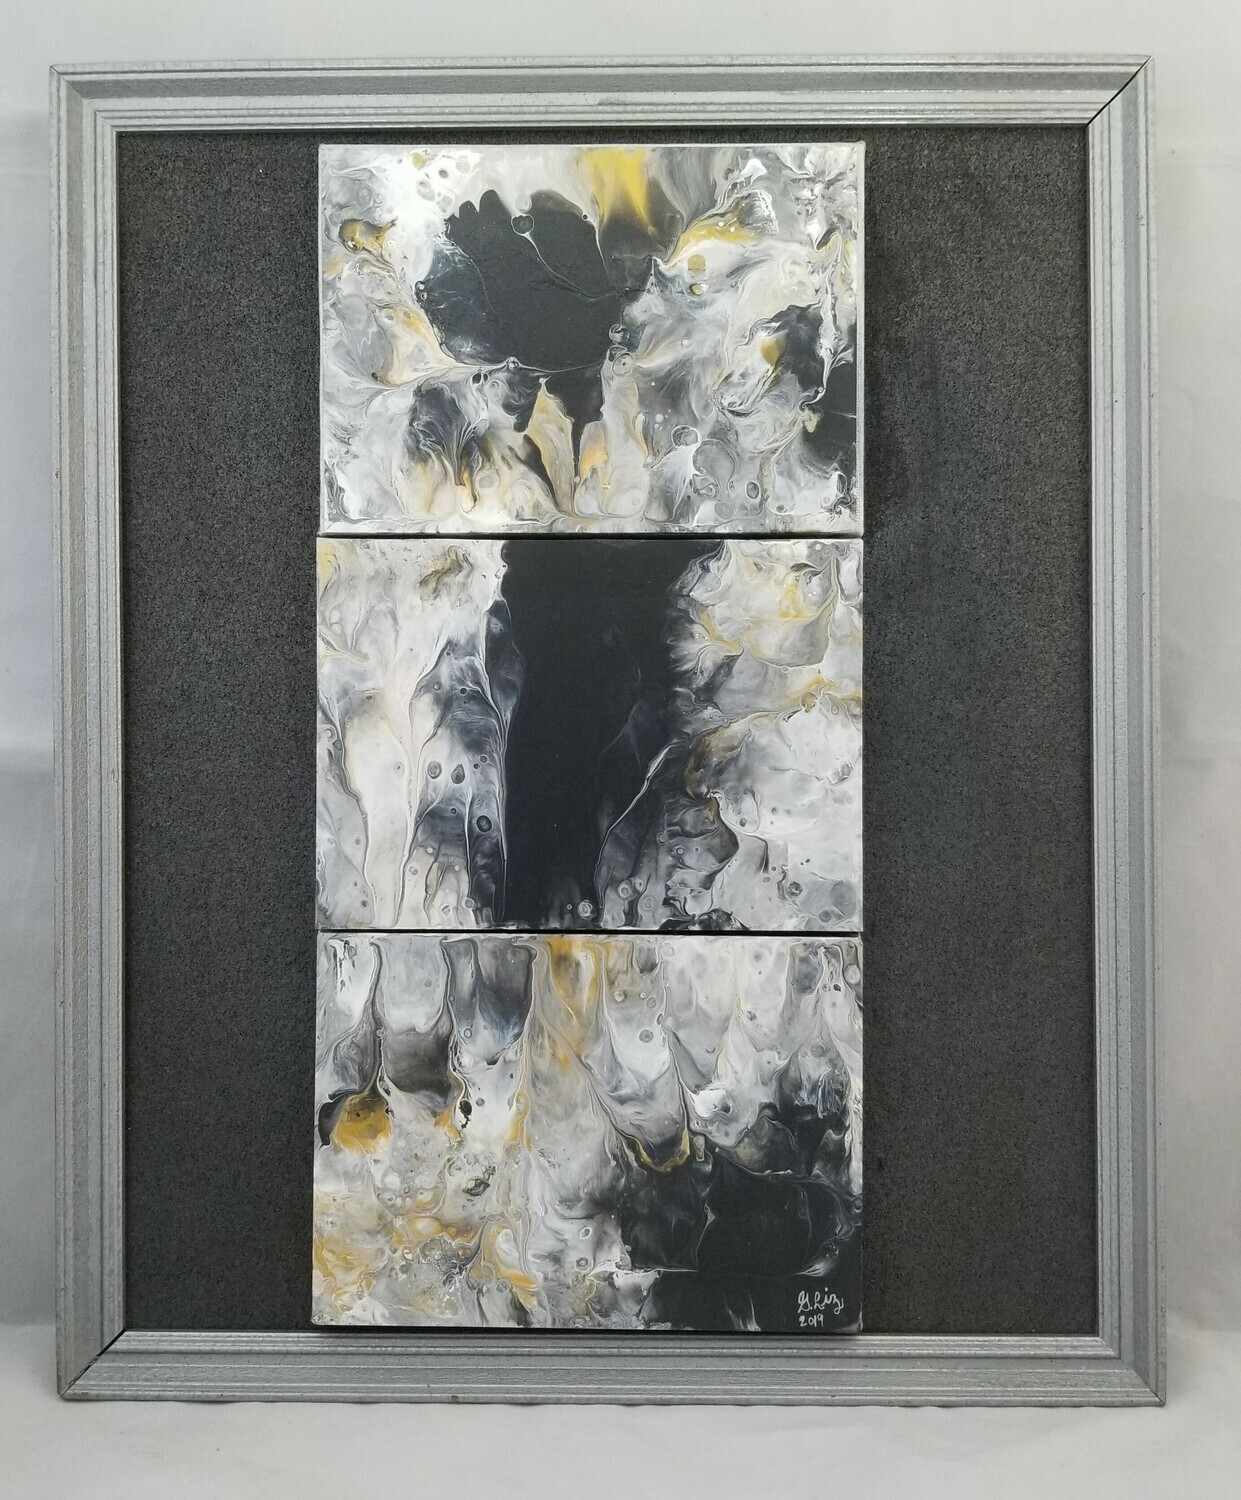 14X17 FRAMED ABSTRACT ON RECYCLED  GLASS